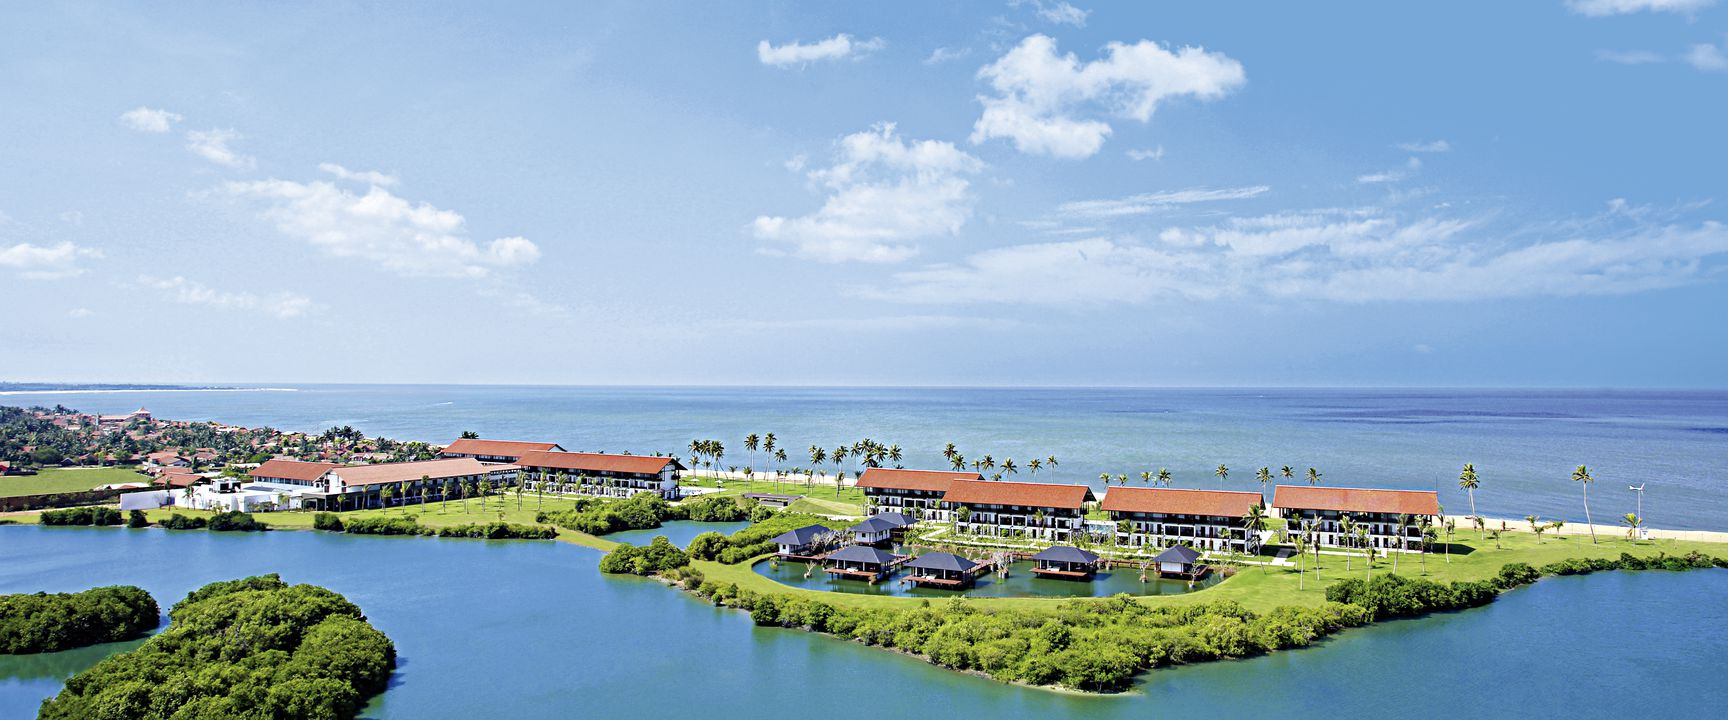 Anantaya Resort & Spa Chilaw - 4*